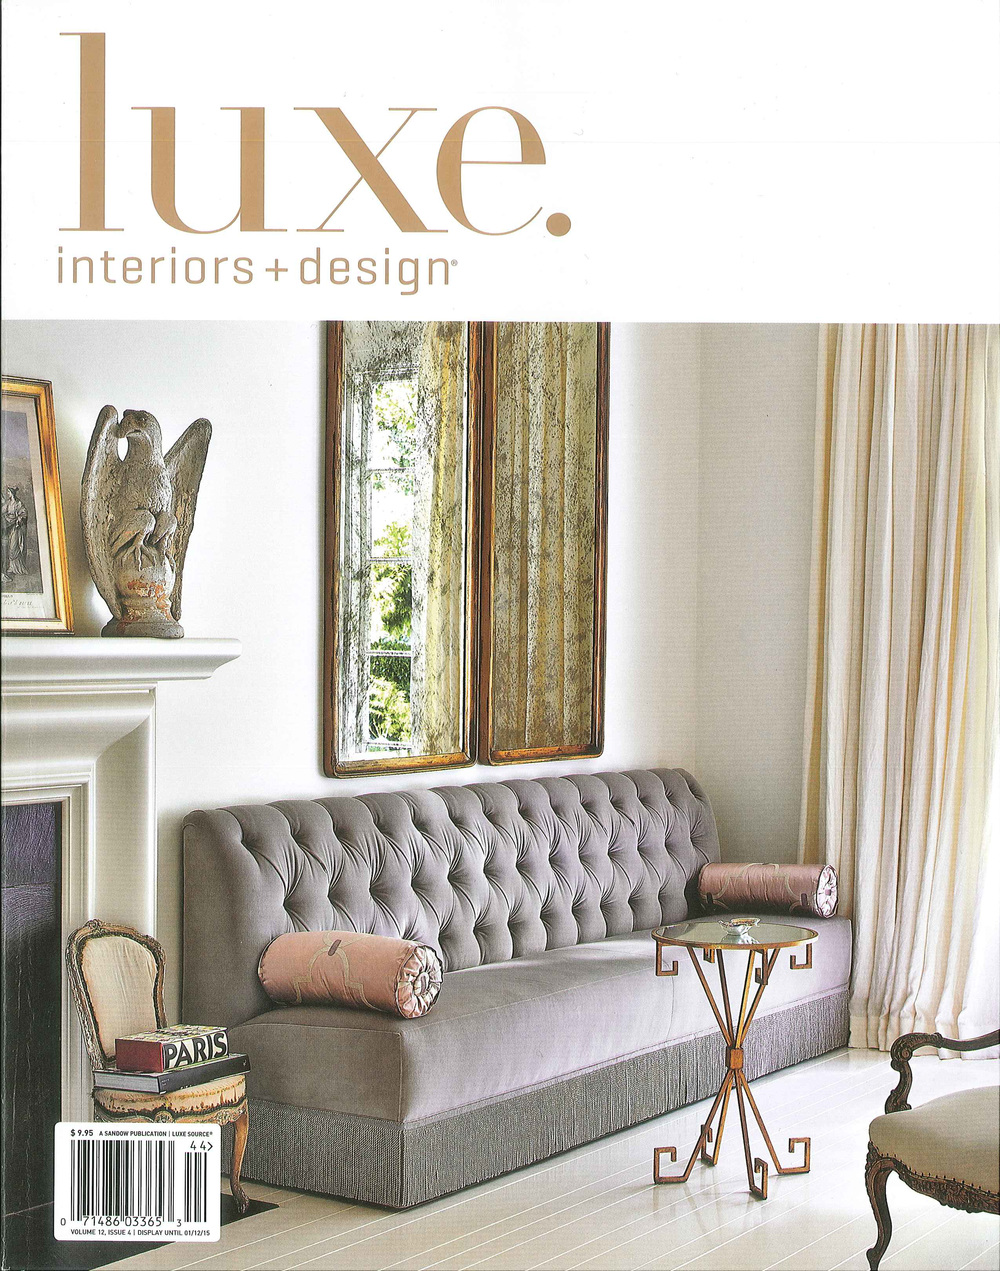 LuxeMag_Nov2014_Cover.jpg